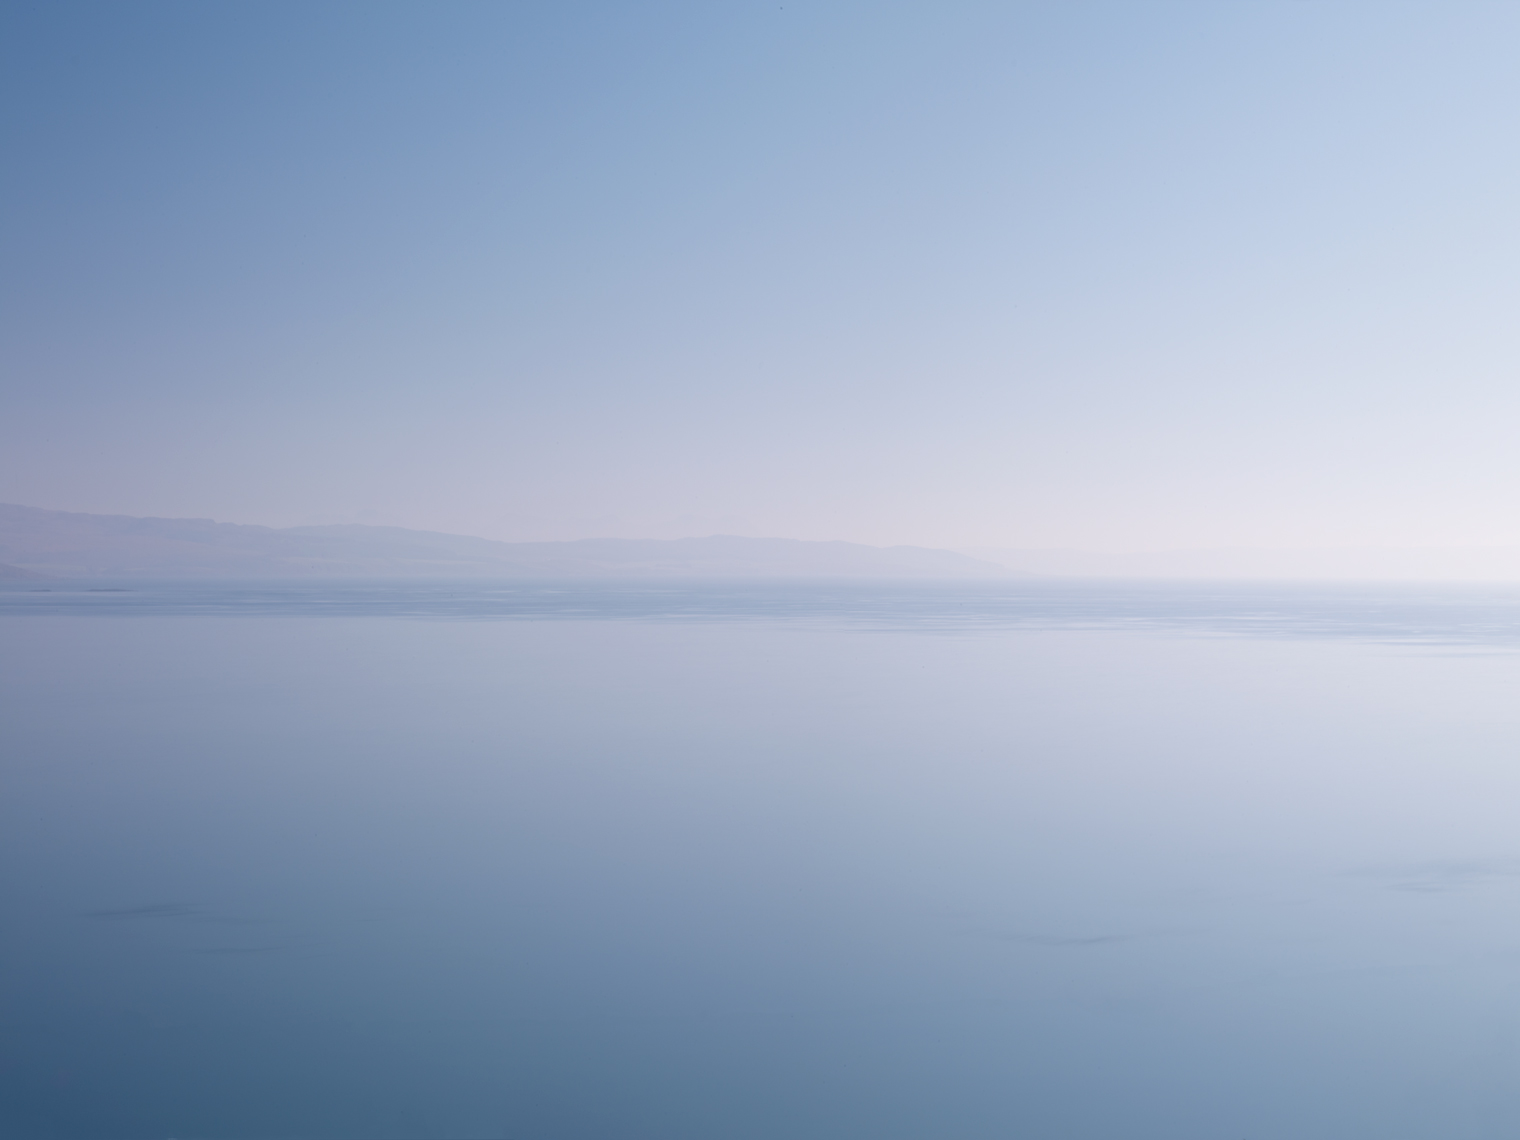 Jon Wyatt Photography - Sound of Jura IV - seascape of the Sound of Jura looking towards the Scottish mainland